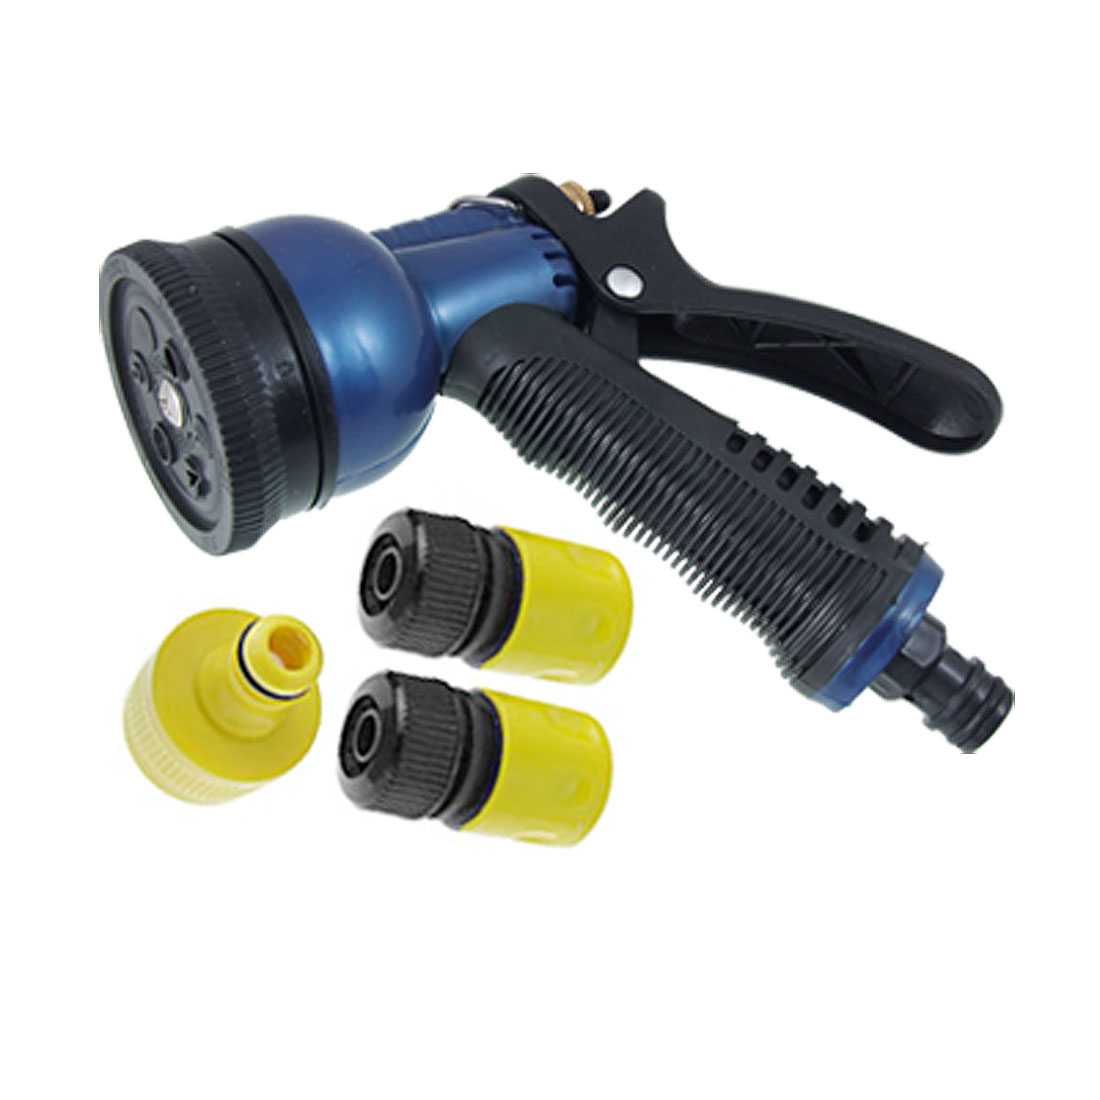 Yard Lawn Water Spray Washer Plastic Combo Hose Nozzle